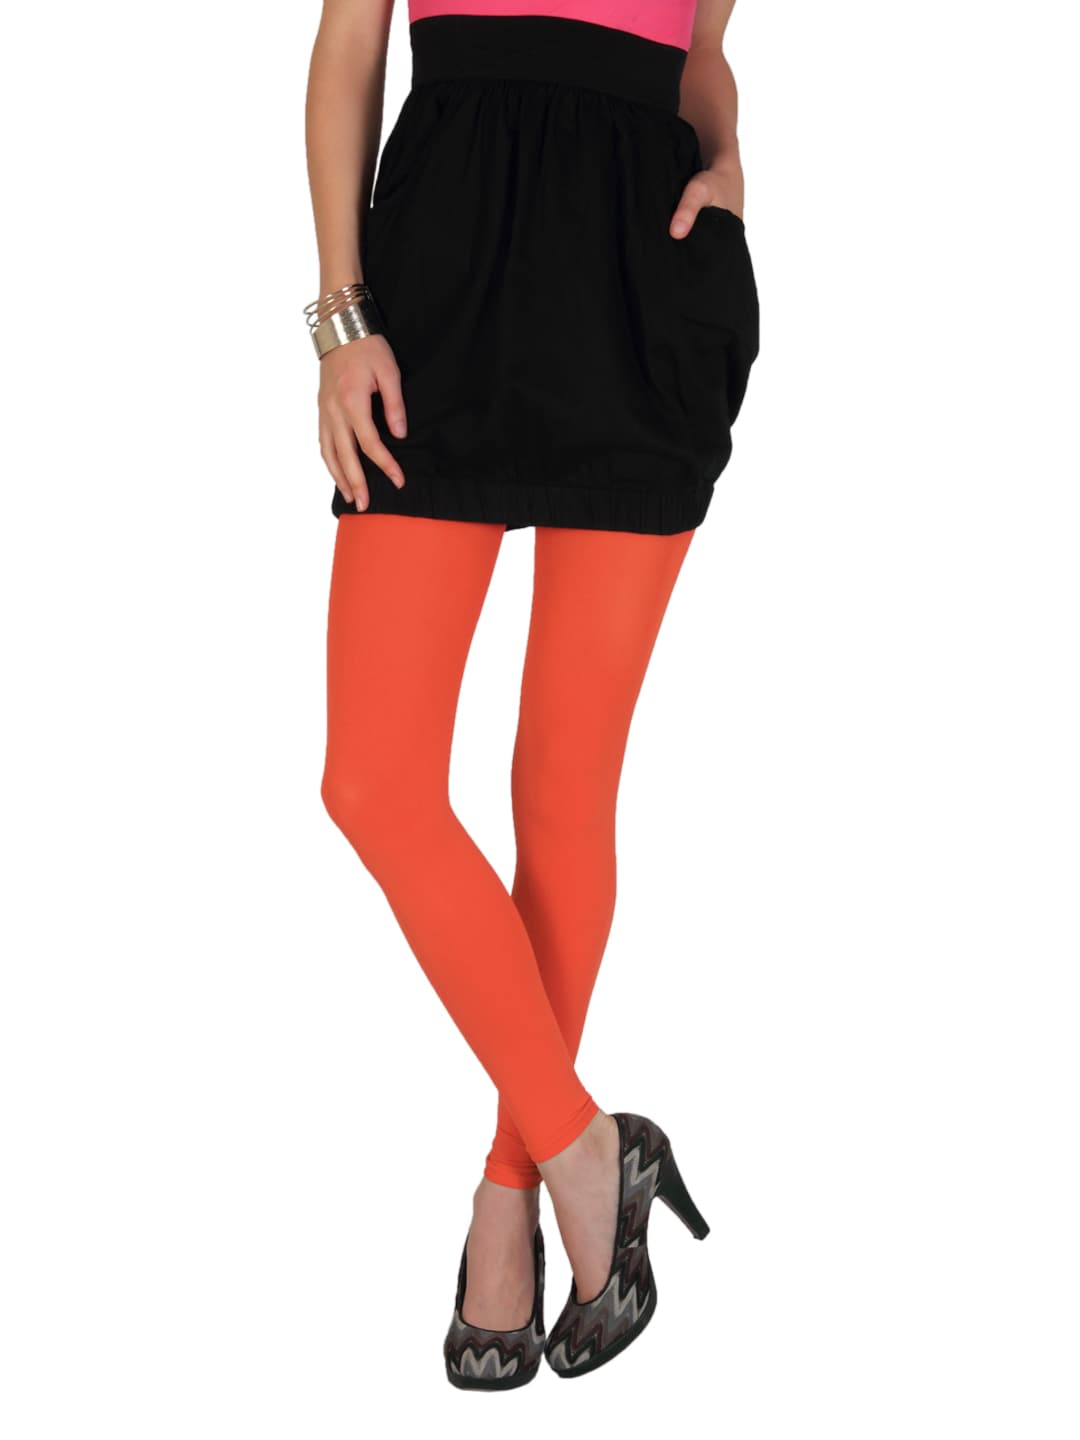 shop comfortable tights, leggings & socks from lane bryant For all the best fitting plus size tights and stockings, shop Lane Bryant's comfortable collection of tights, leggings and socks. Our knee high socks in solid colors or fun patterned socks are perfect for your favorite seasonal boots.